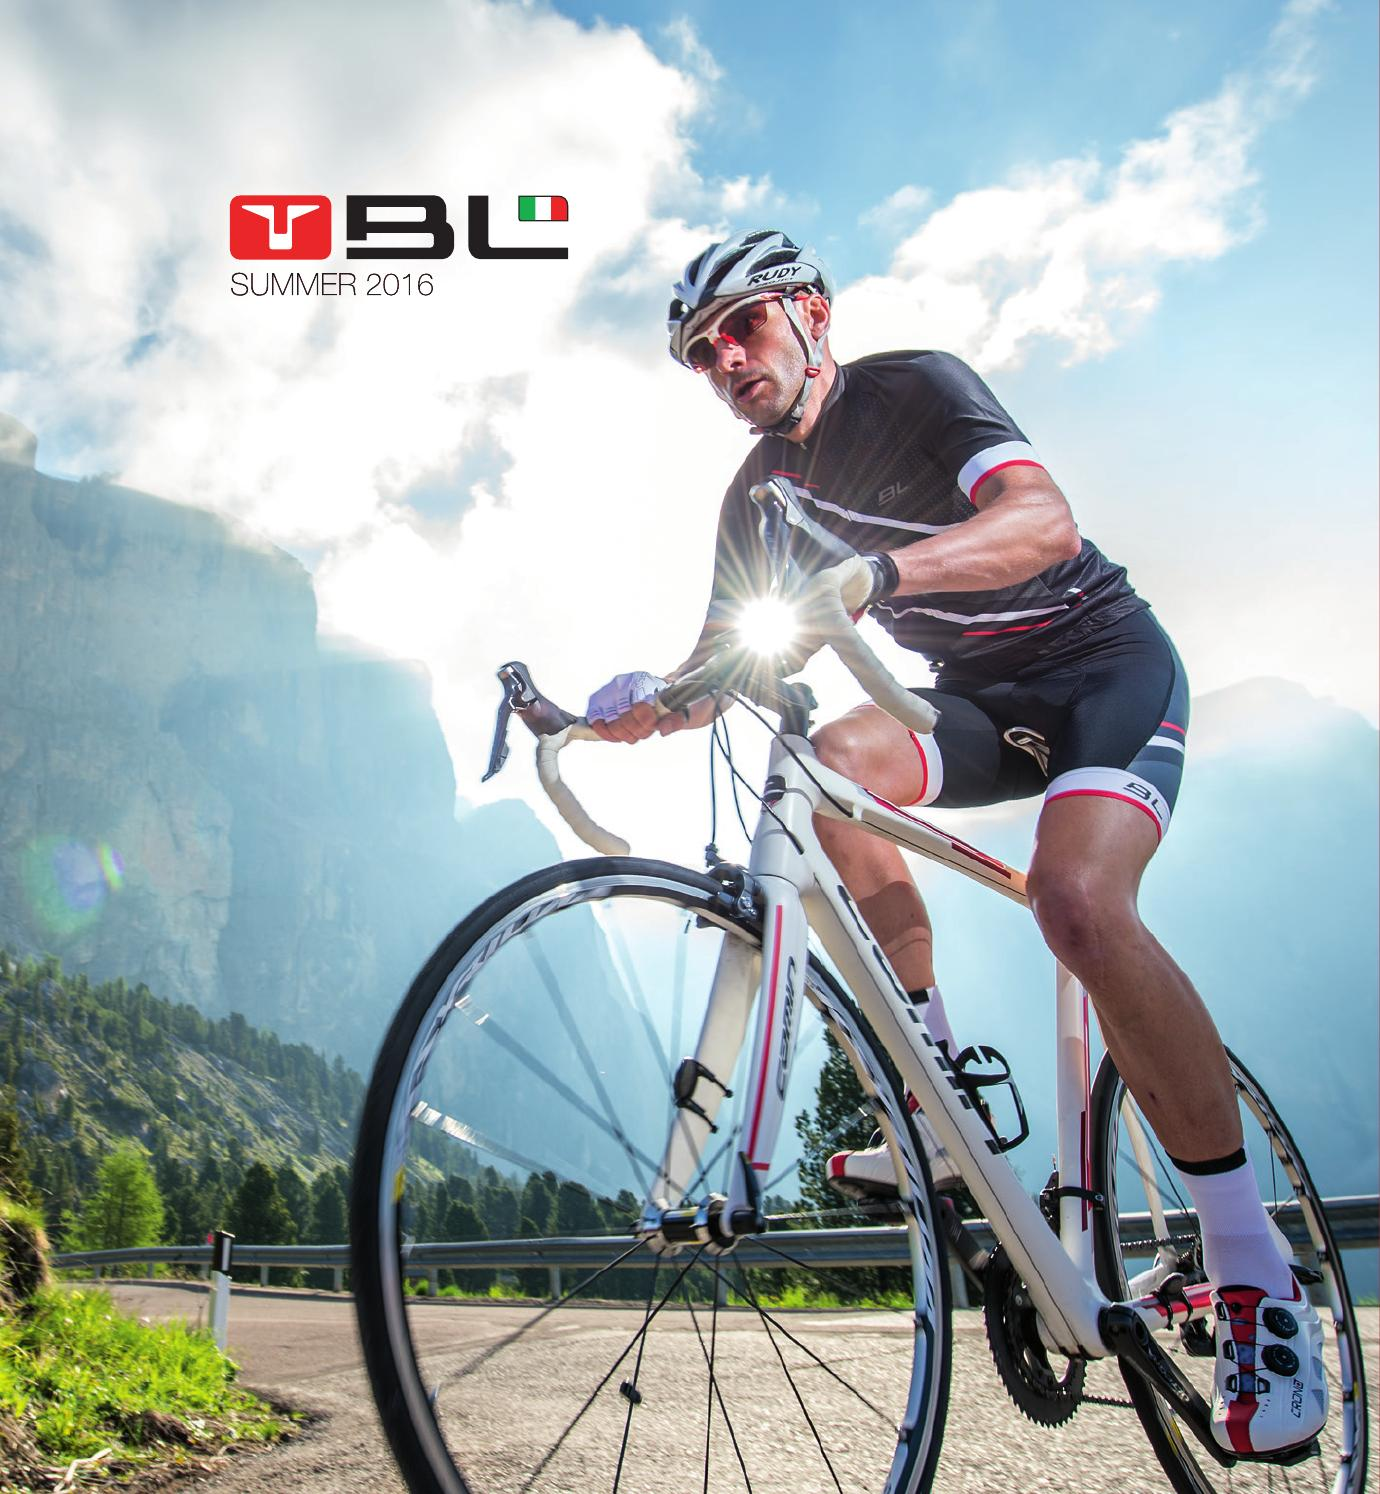 e3ff3d92247 2016 Spring- Summer BL Bicycle Line cycling clothing catalogue by ...